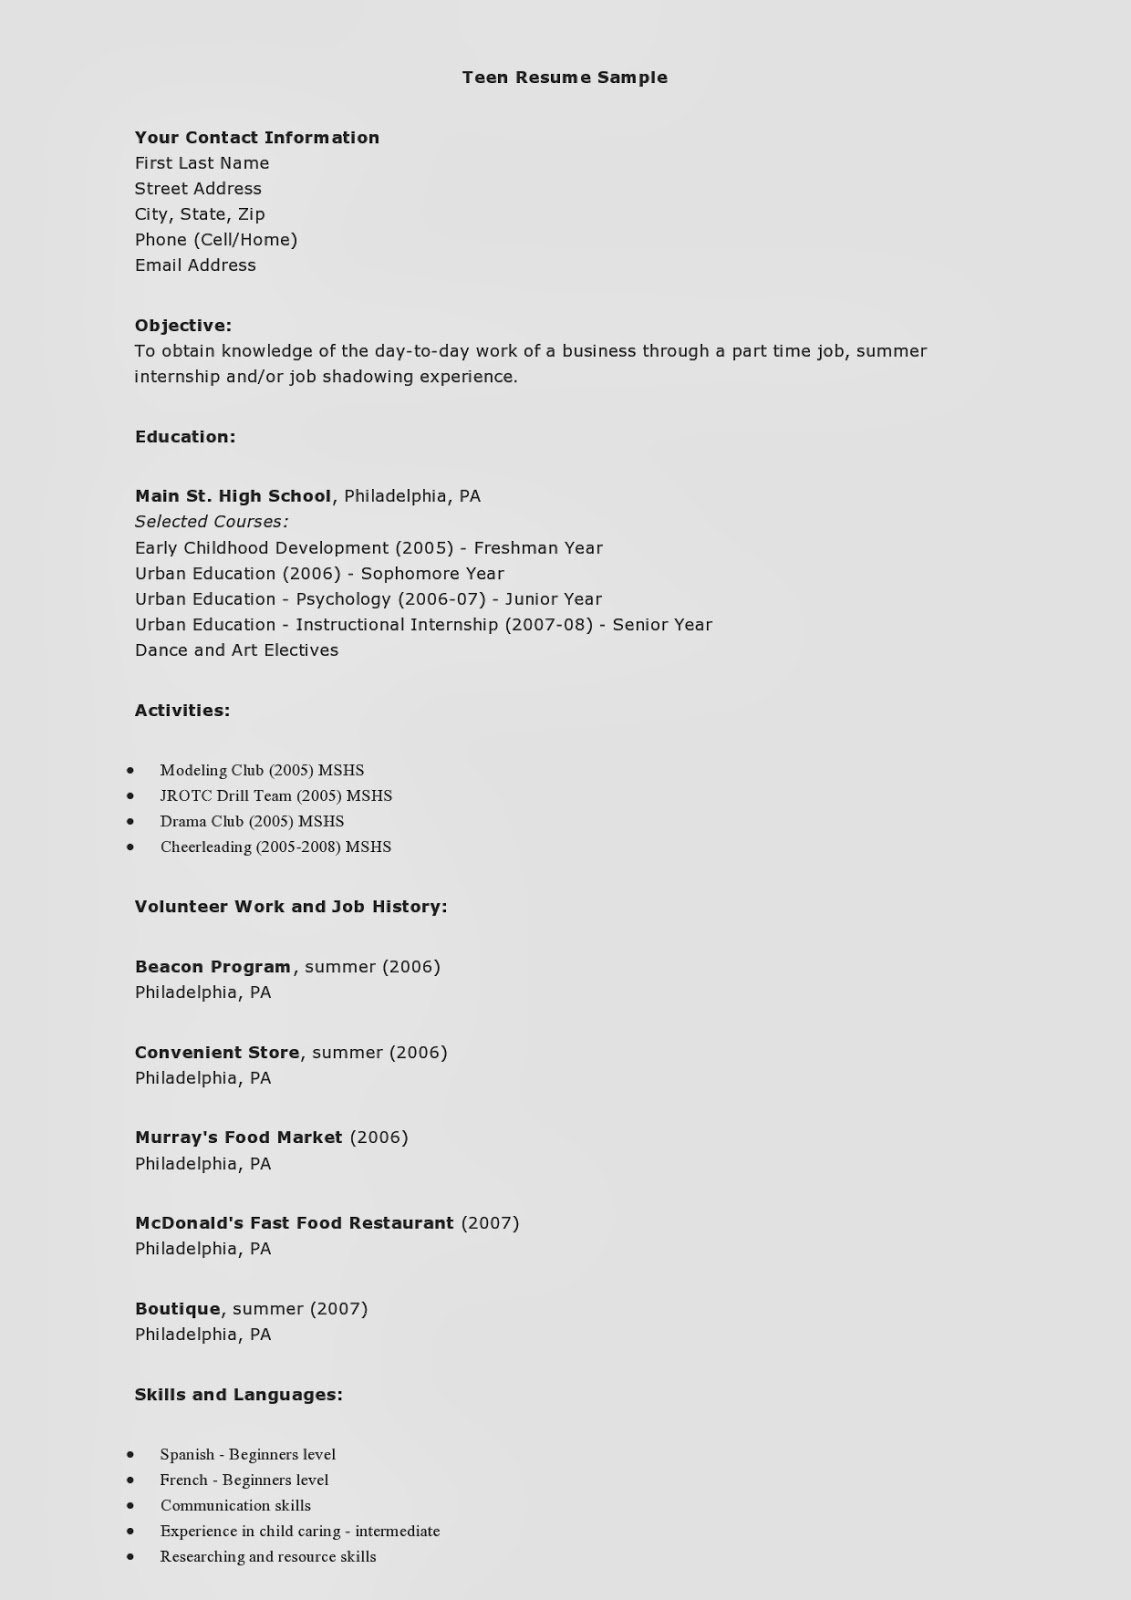 Resume Template For Teenager – Pastoral Resume Template